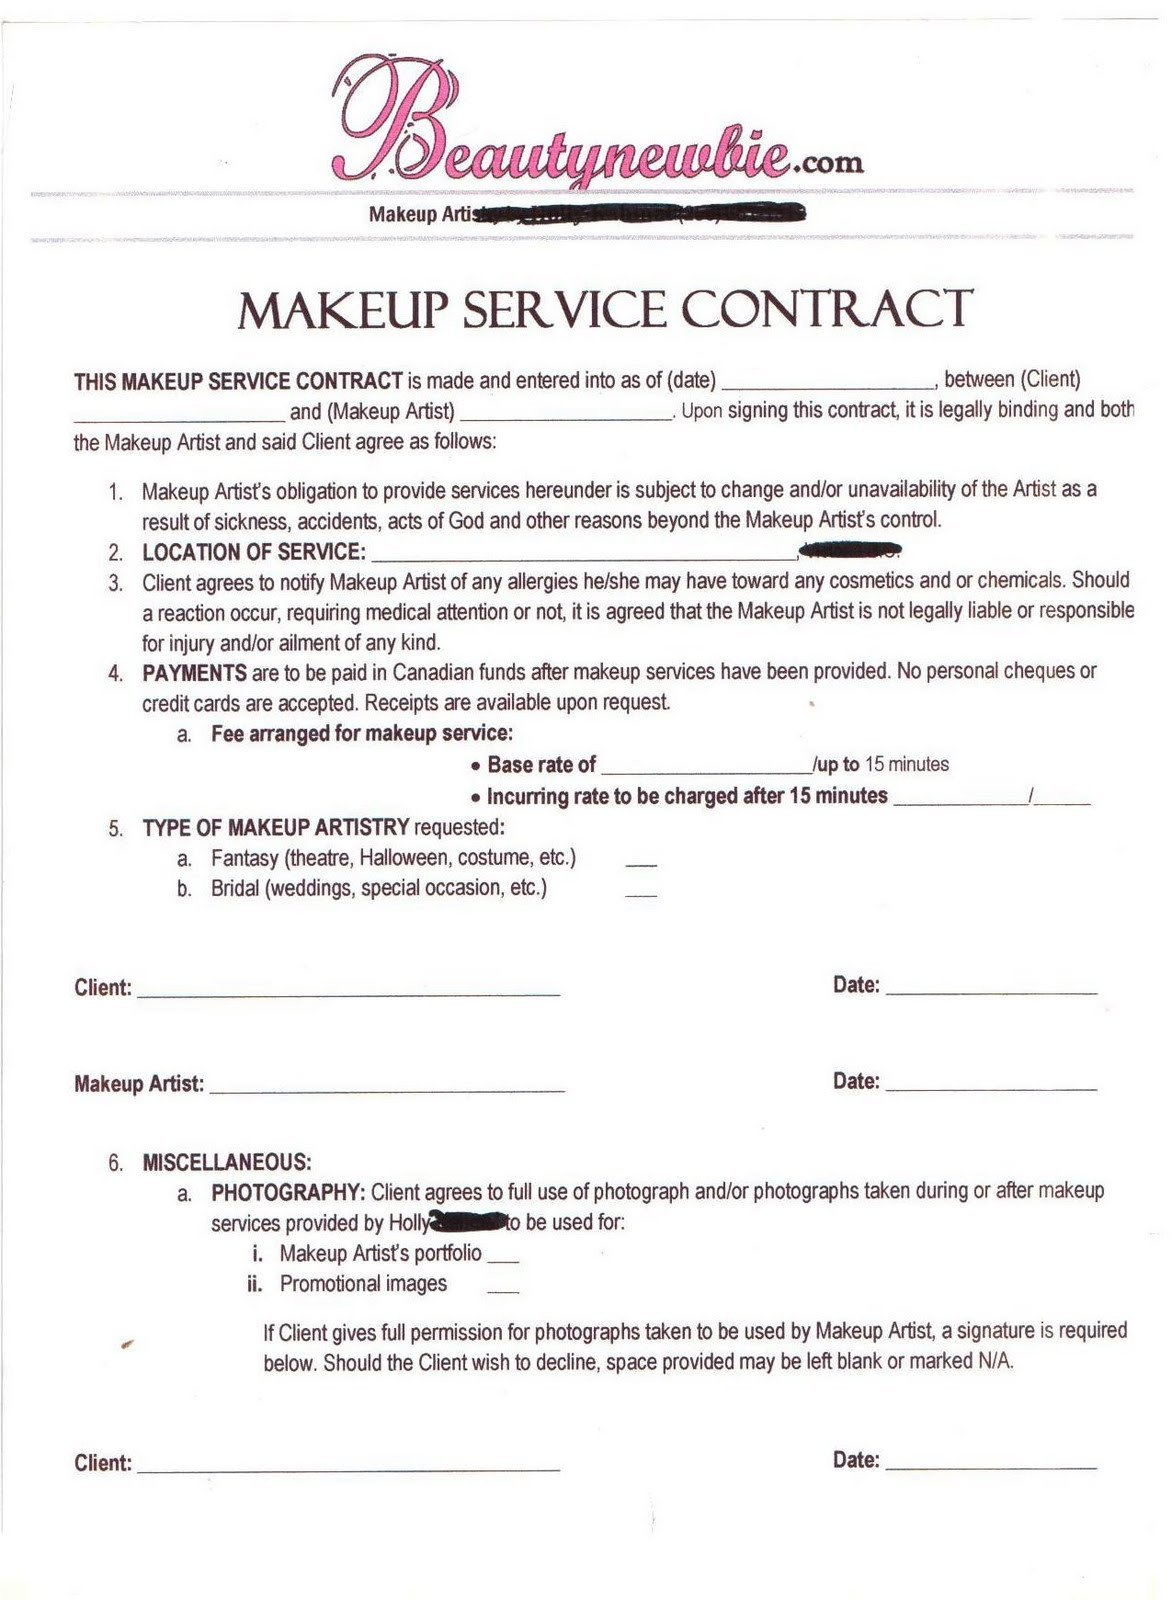 Freelance Makeup Artist Contract Template Freelance Makeup Artist Contract Template